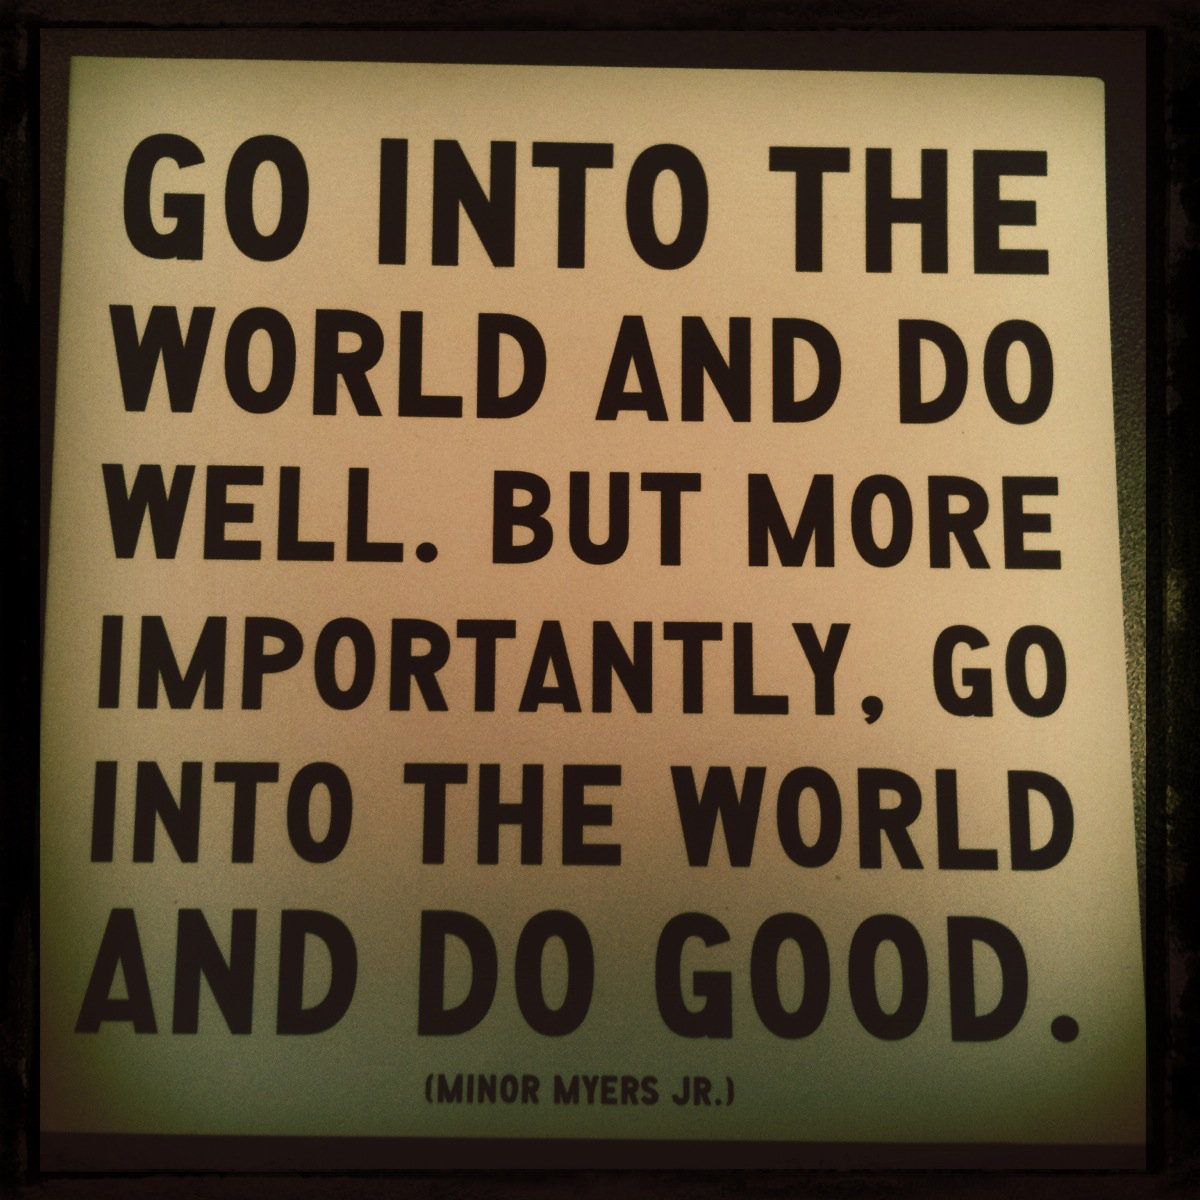 Be Great Quotes: Great Quotes About Philanthropy. QuotesGram